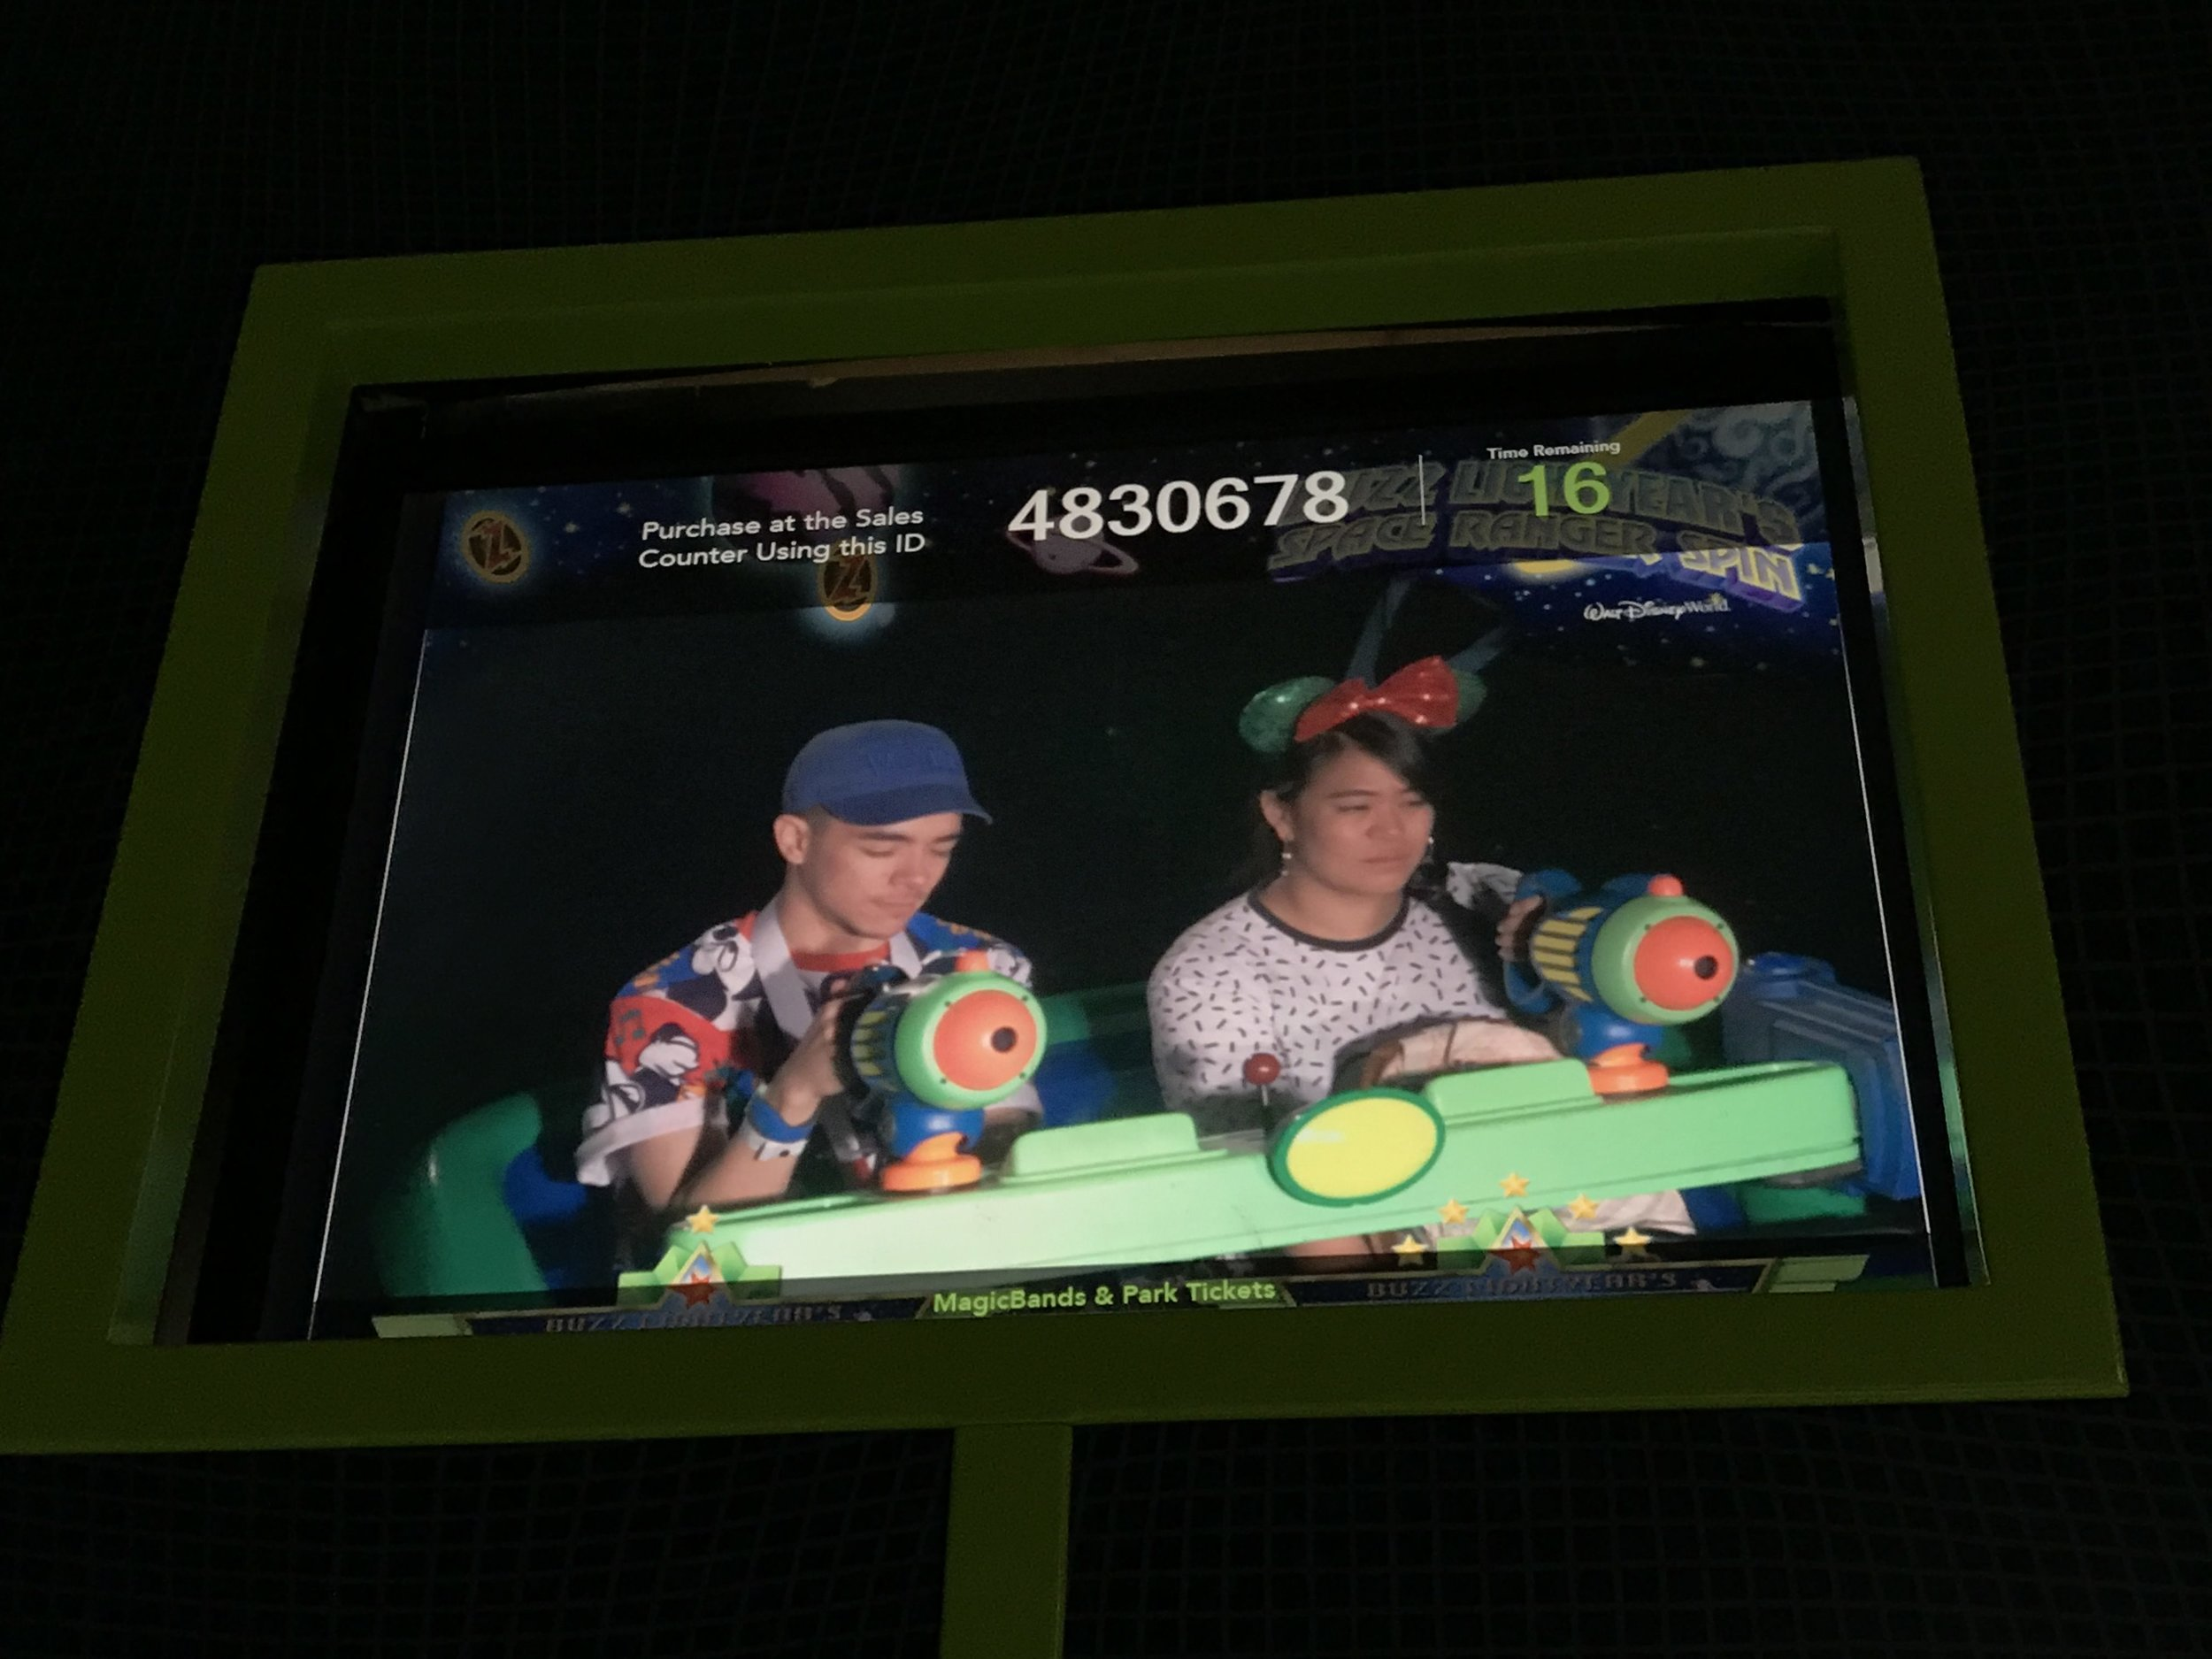 Riding the Buzz Lightyear Ride at Disney World is just not as fun as Disneyland's version.